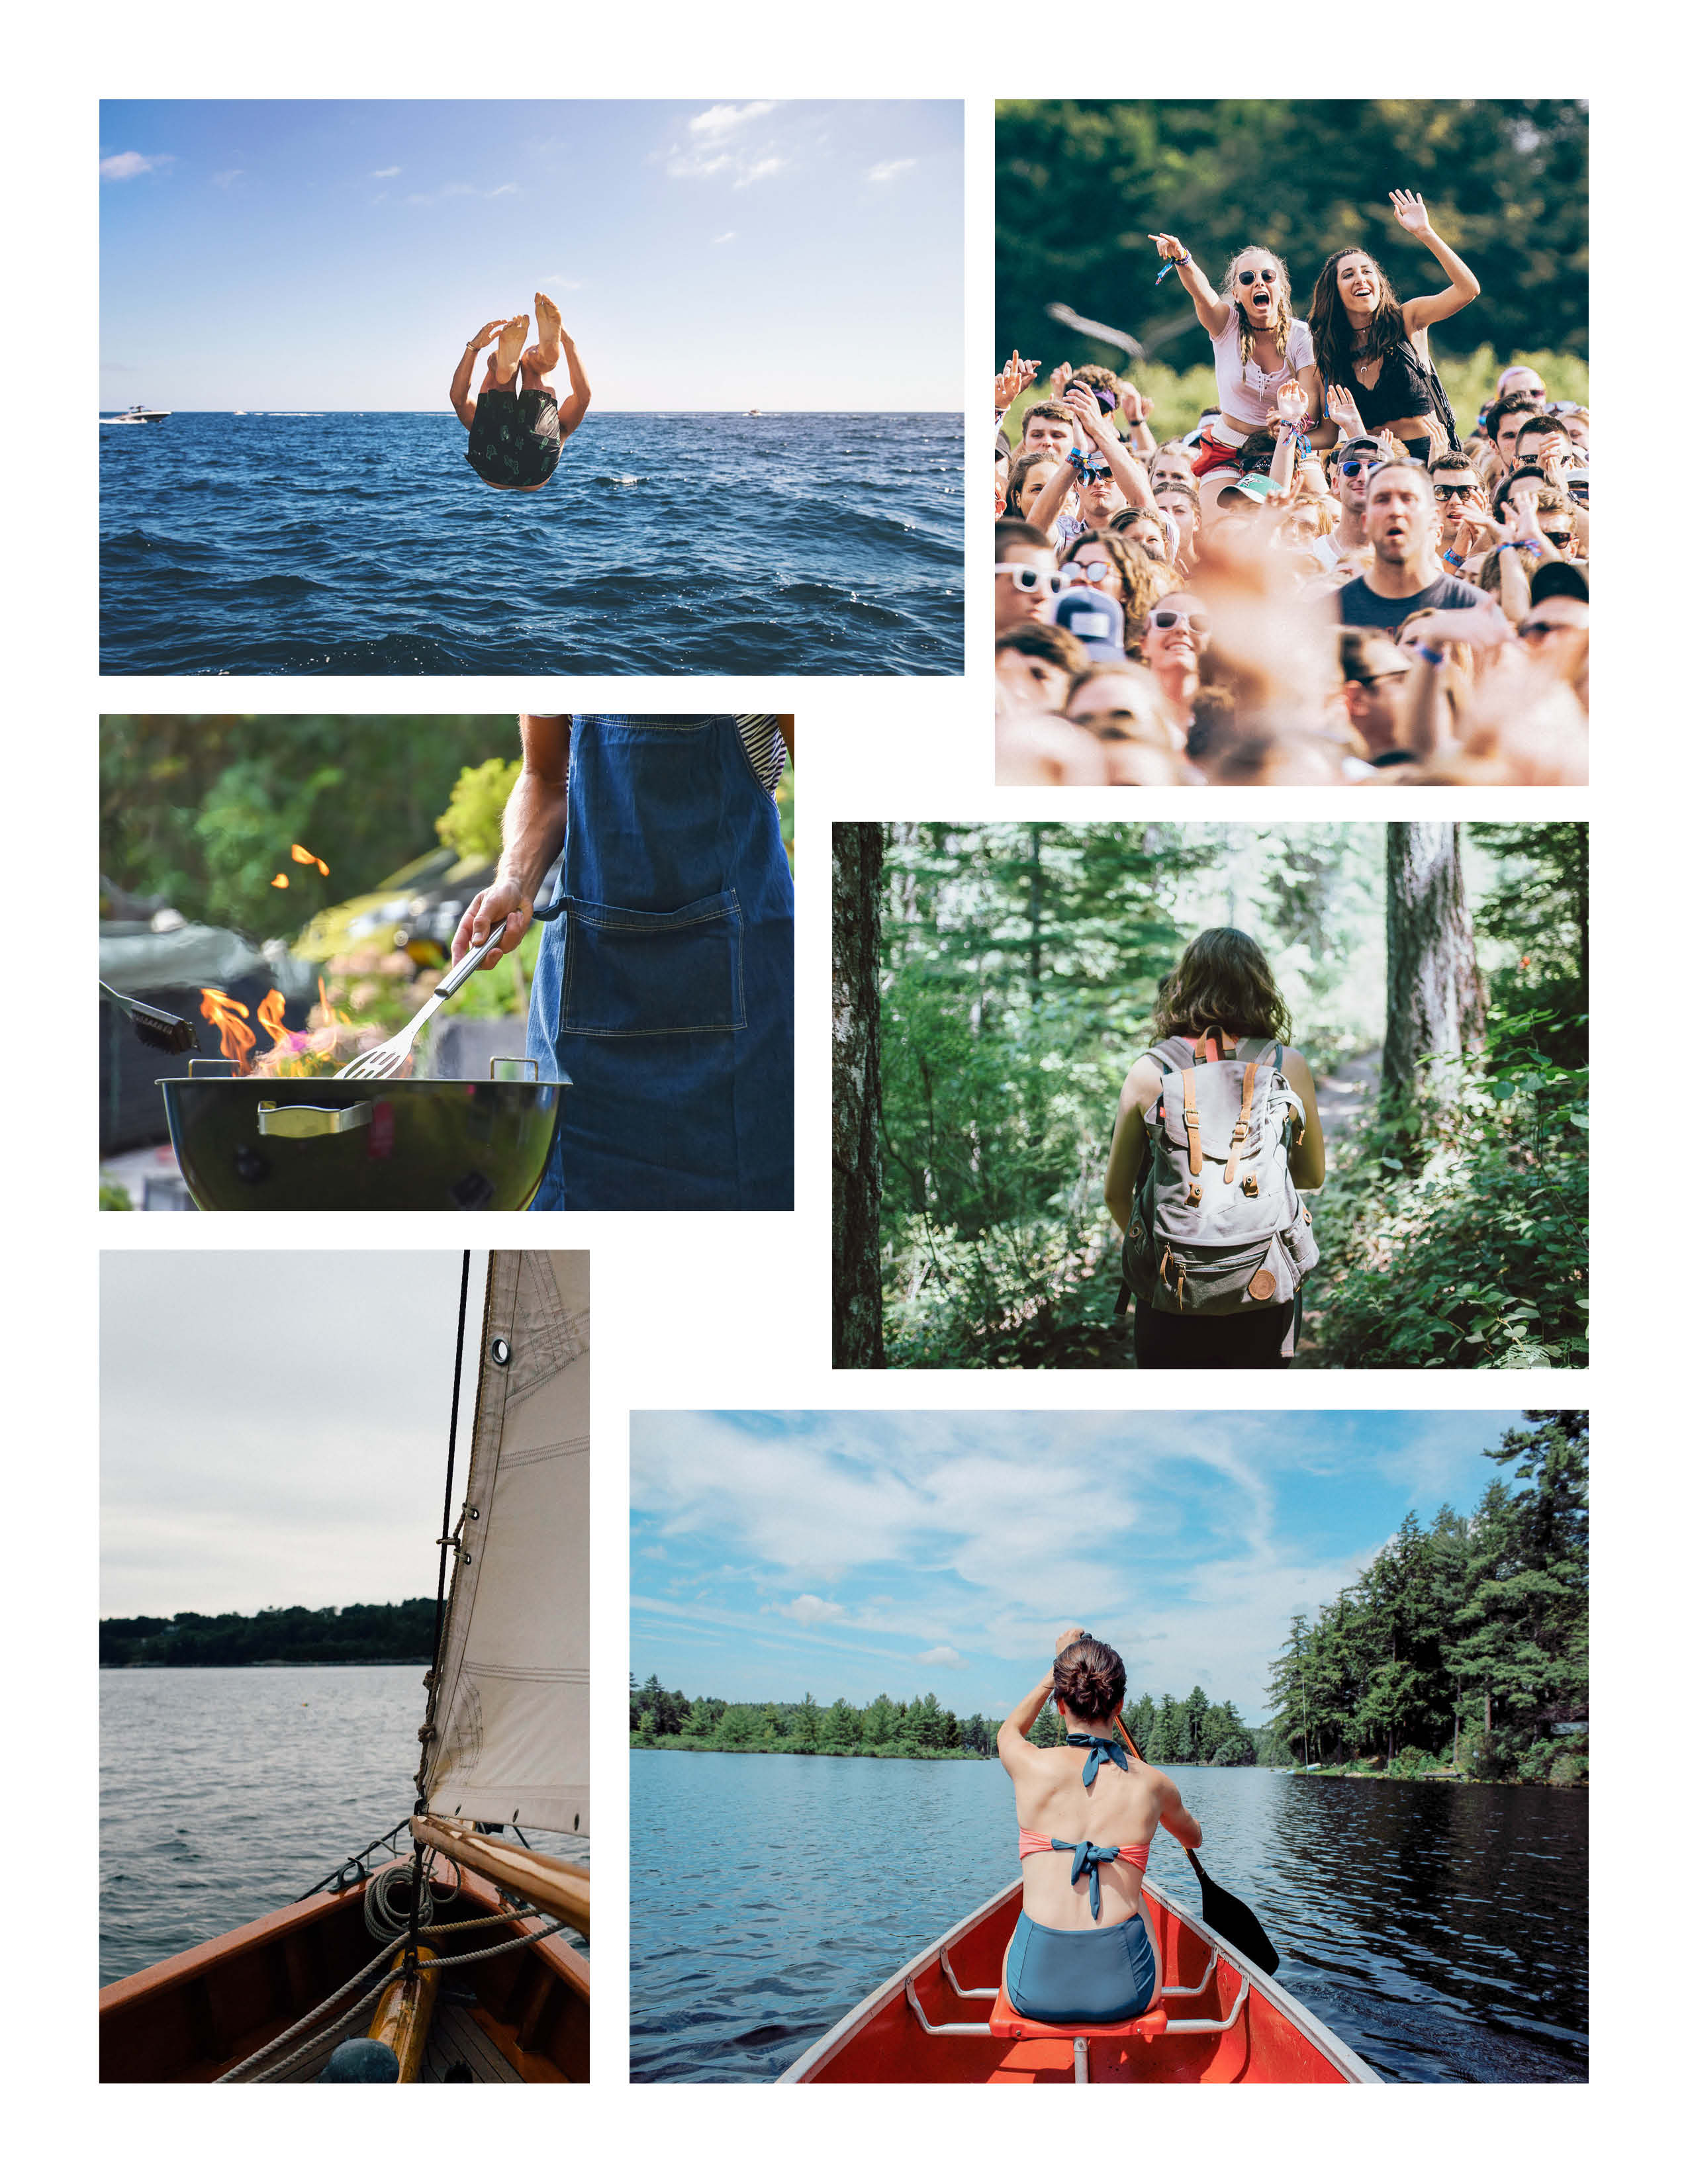 six picture collage of outdoor adventures and fun